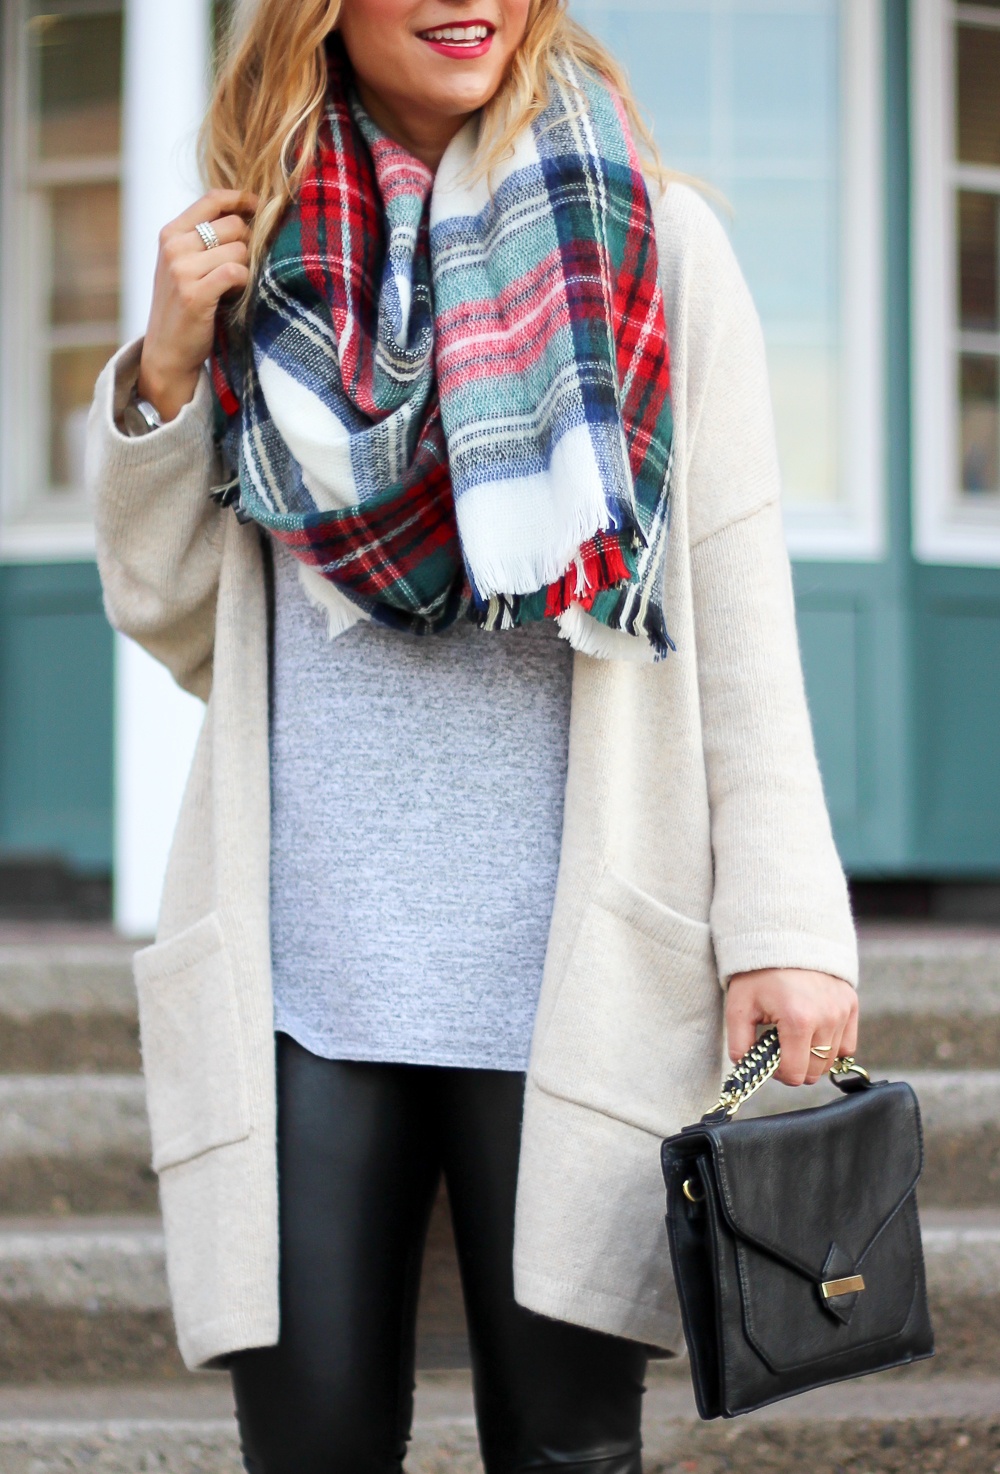 Cozy and casual outfit, perfect for the fall and winter, in a cozy Gap cardigan and plaid blanket scarf